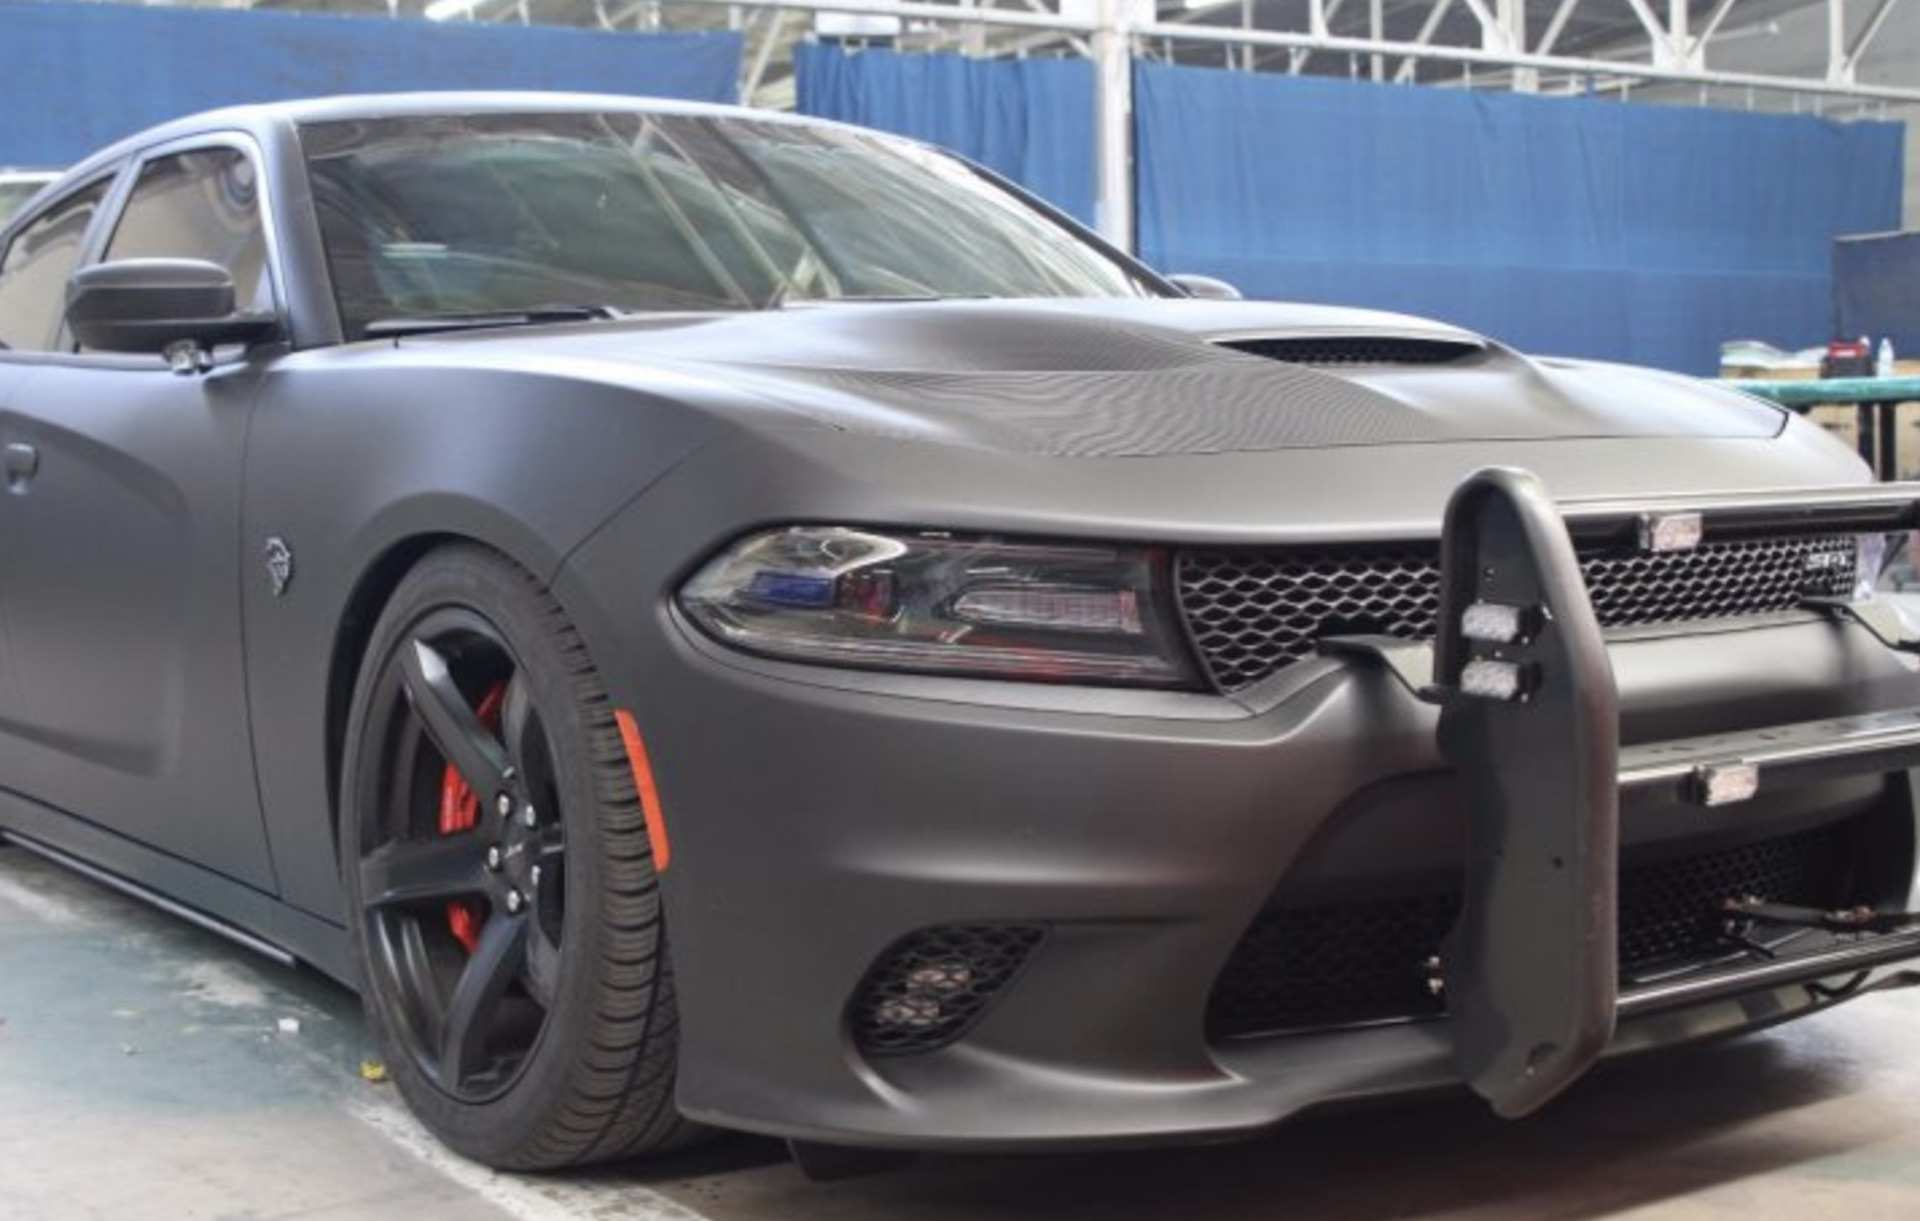 51 The 2020 Dodge Charger Awd Interior